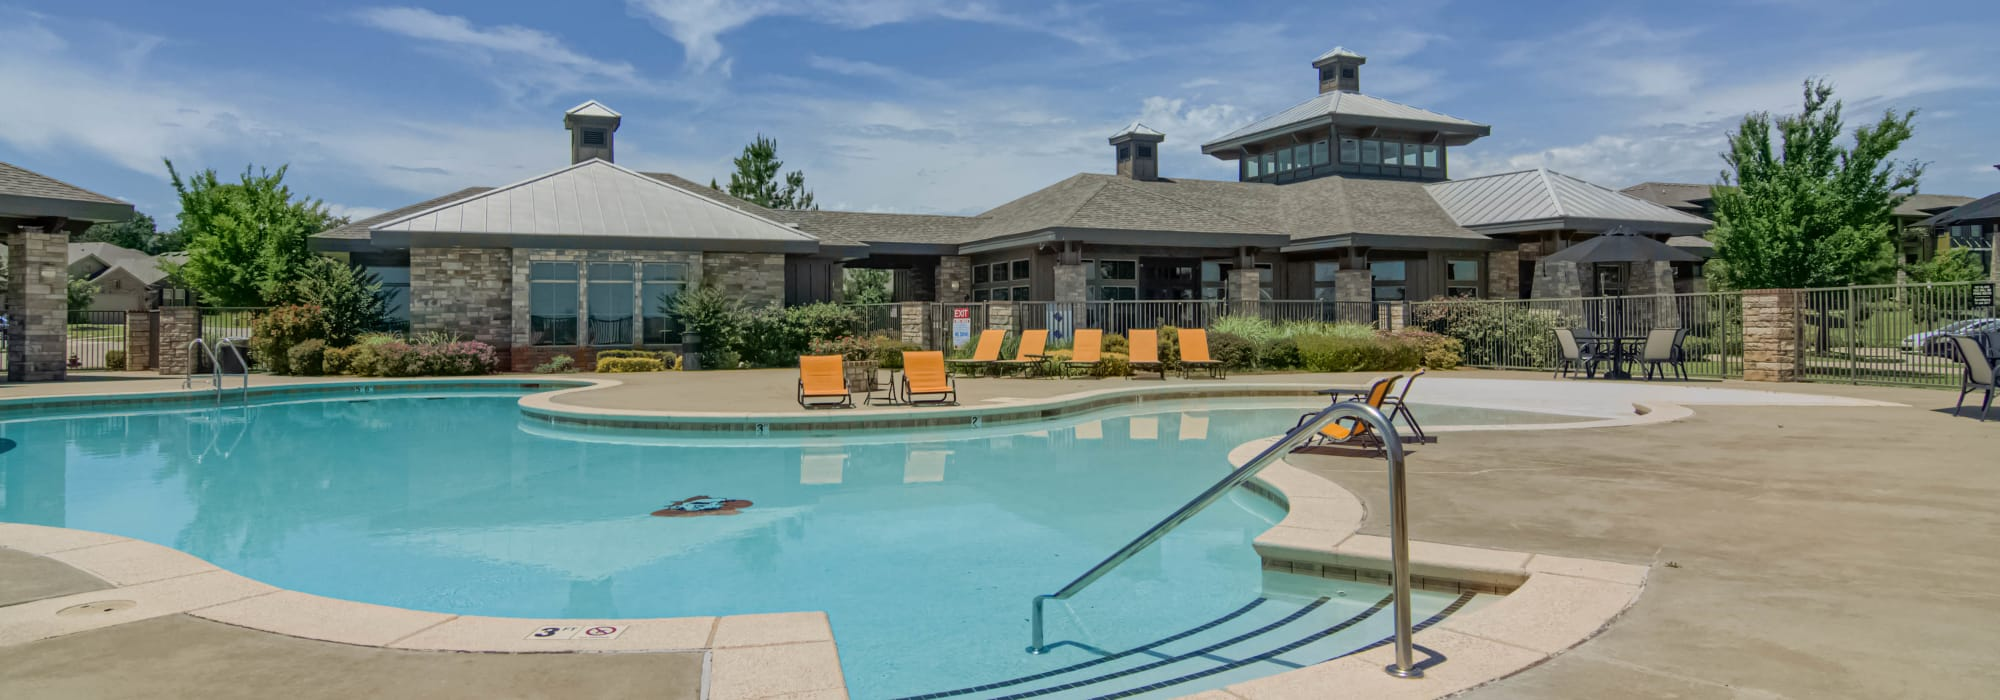 Apartments at Tradan Heights in Stillwater, Oklahoma